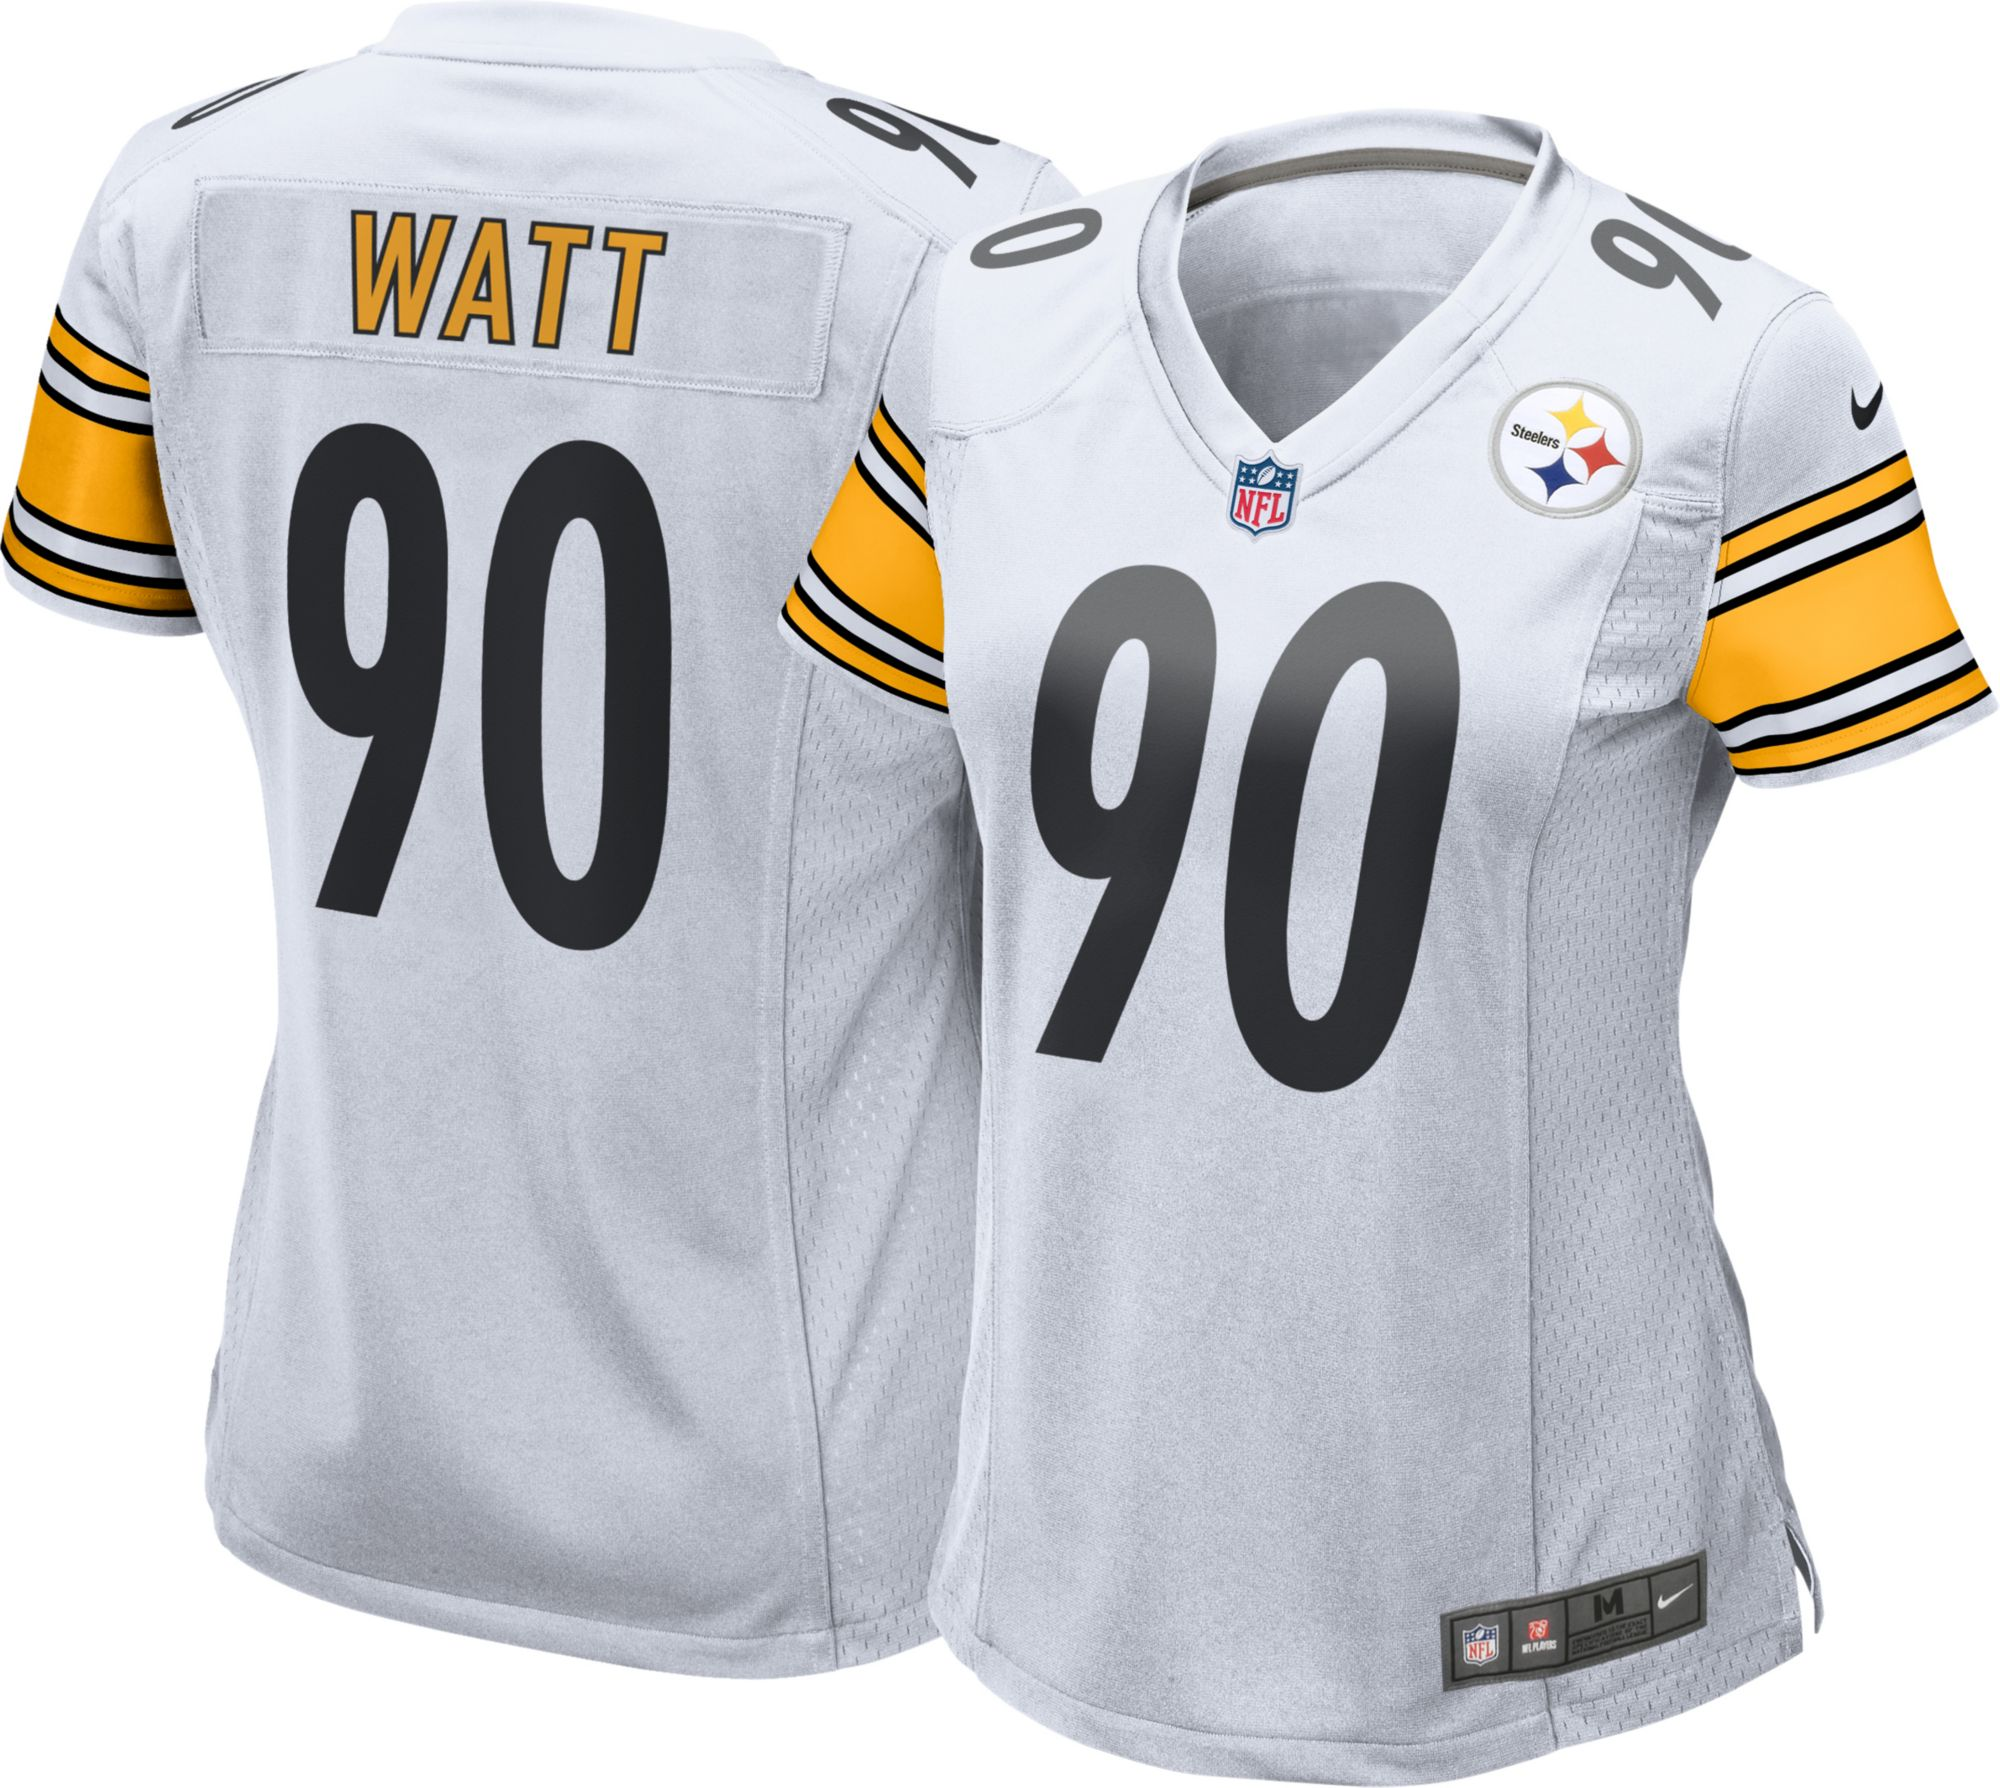 new arrival c3505 fa167 pittsburgh steelers womens jersey